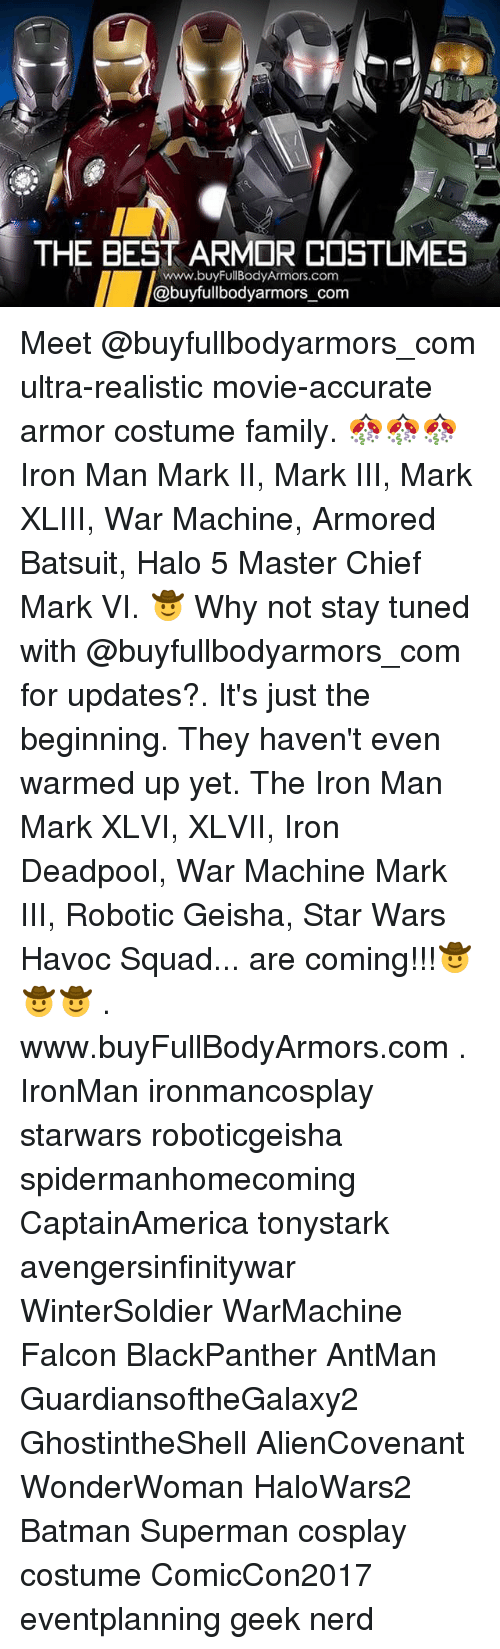 War Machine: THE BEST ARMOR COSTLIMES  www.buyFullBodyArmors.com  @buyfullbodyarmors_com Meet @buyfullbodyarmors_com ultra-realistic movie-accurate armor costume family. 🎊🎊🎊Iron Man Mark II, Mark III, Mark XLIII, War Machine, Armored Batsuit, Halo 5 Master Chief Mark VI. 🤠 Why not stay tuned with @buyfullbodyarmors_com for updates?. It's just the beginning. They haven't even warmed up yet. The Iron Man Mark XLVI, XLVII, Iron Deadpool, War Machine Mark III, Robotic Geisha, Star Wars Havoc Squad... are coming!!!🤠🤠🤠 . www.buyFullBodyArmors.com . IronMan ironmancosplay starwars roboticgeisha spidermanhomecoming CaptainAmerica tonystark avengersinfinitywar WinterSoldier WarMachine Falcon BlackPanther AntMan GuardiansoftheGalaxy2 GhostintheShell AlienCovenant WonderWoman HaloWars2 Batman Superman cosplay costume ComicCon2017 eventplanning geek nerd